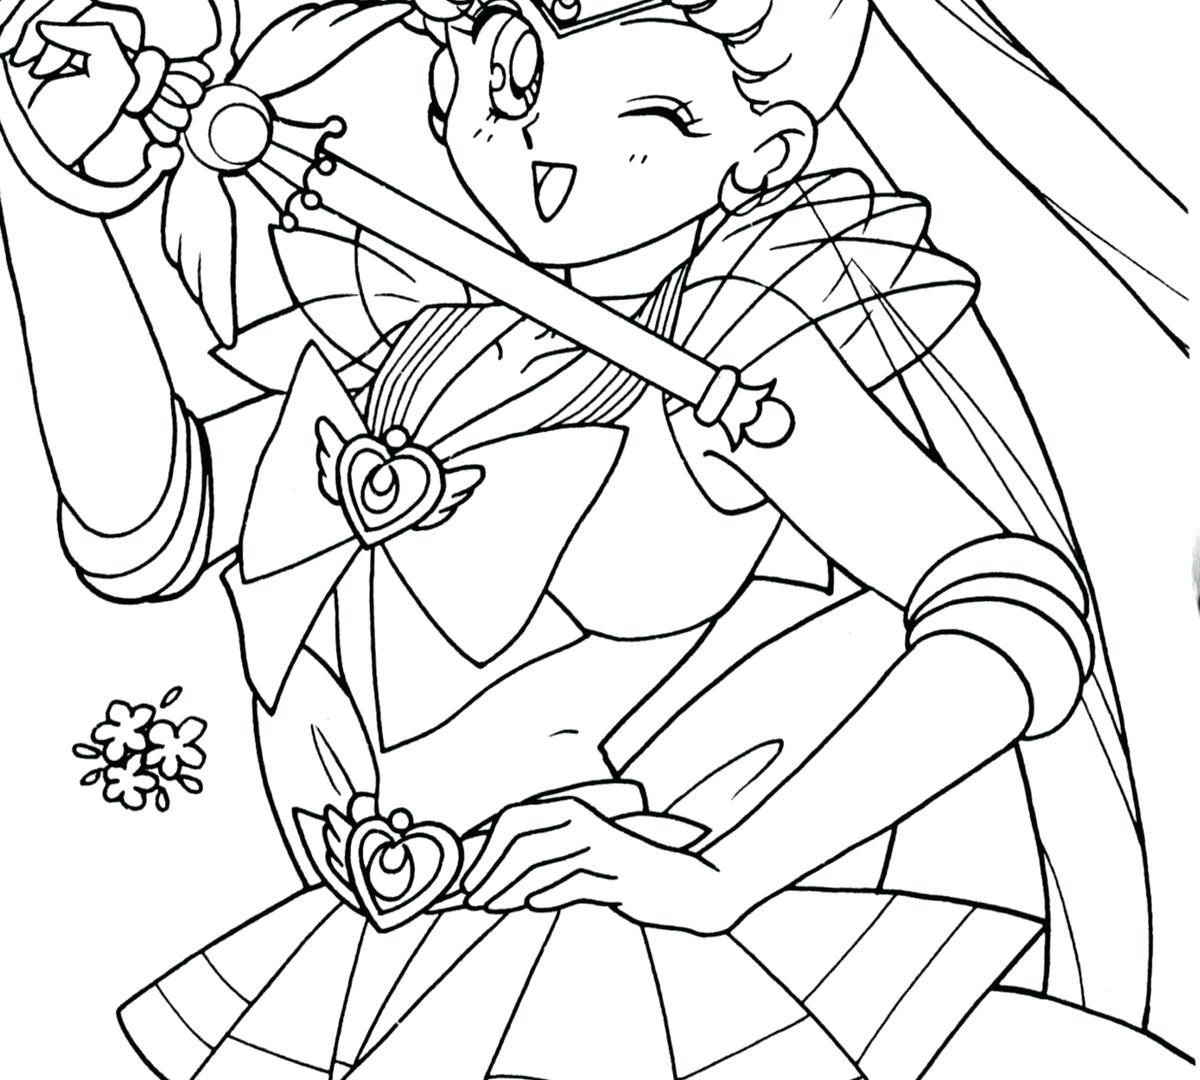 1200x1080 Coloring Sailor Mars Coloring Pages Fire Ink By Moon. Sailor Mars